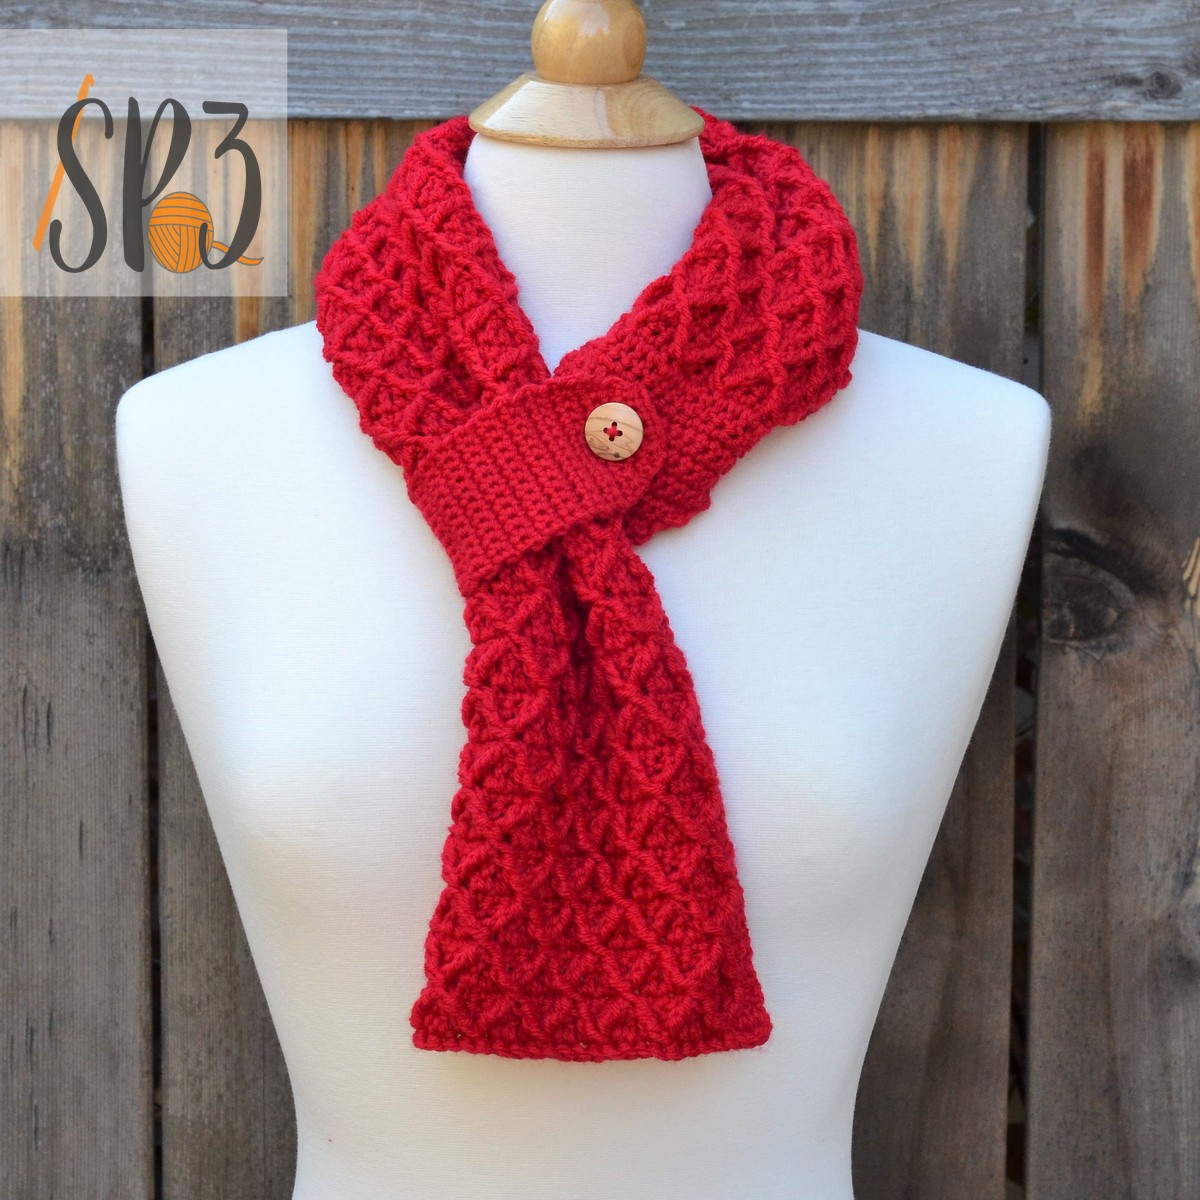 You are currently viewing Lattice Scarf Remix with Nicki's Handmade Crafts